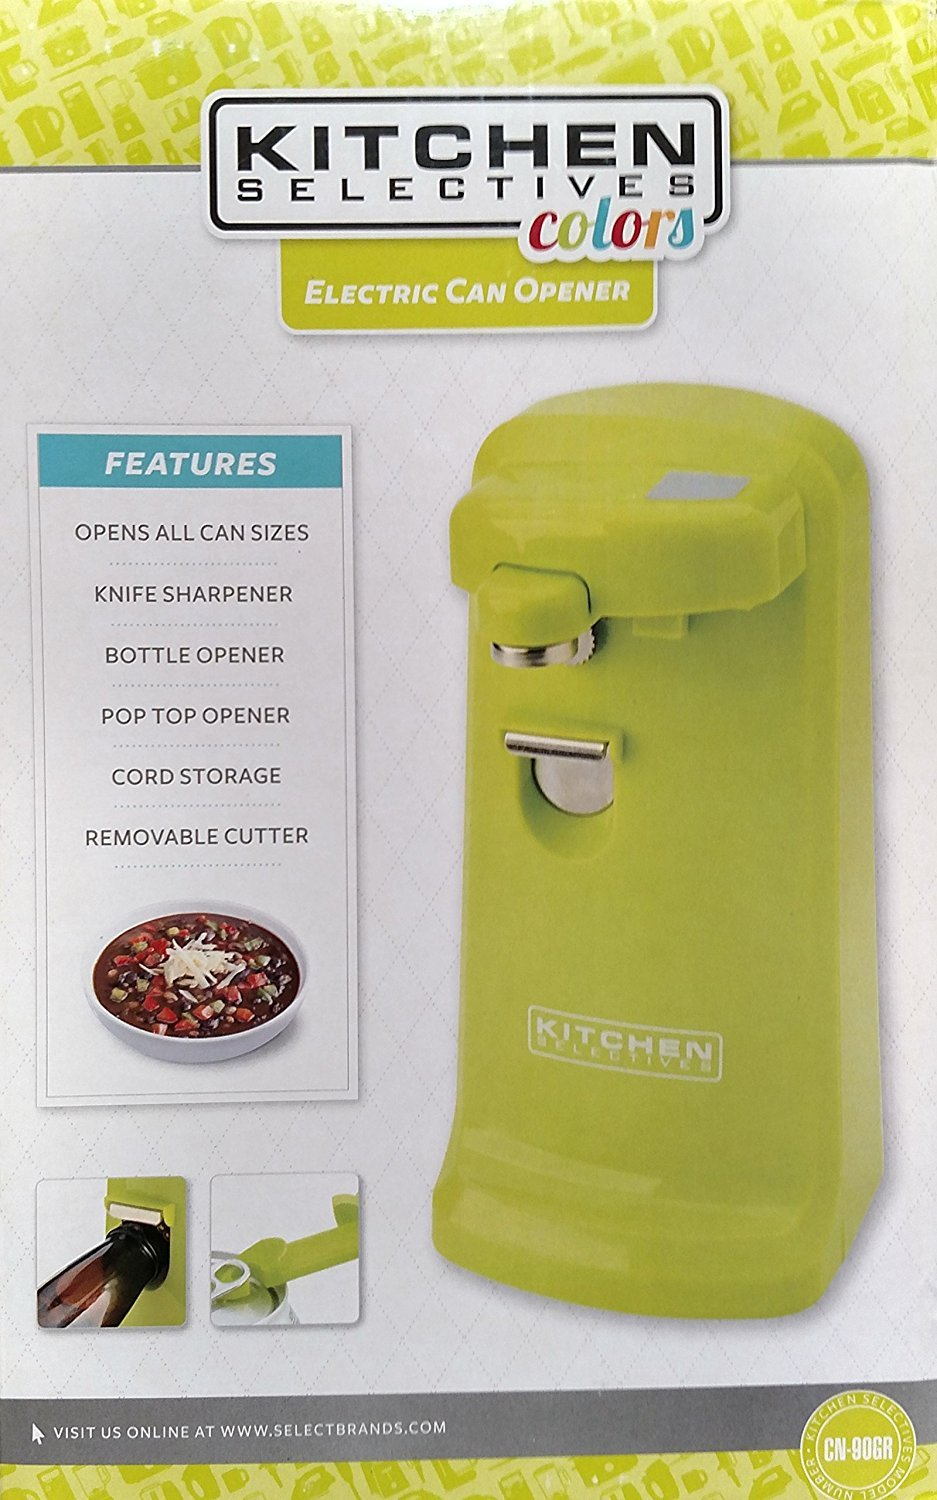 Kitchen Selectives Colors Electric Can Opener, Lime Green (Lime Green) COMINHKPR126075